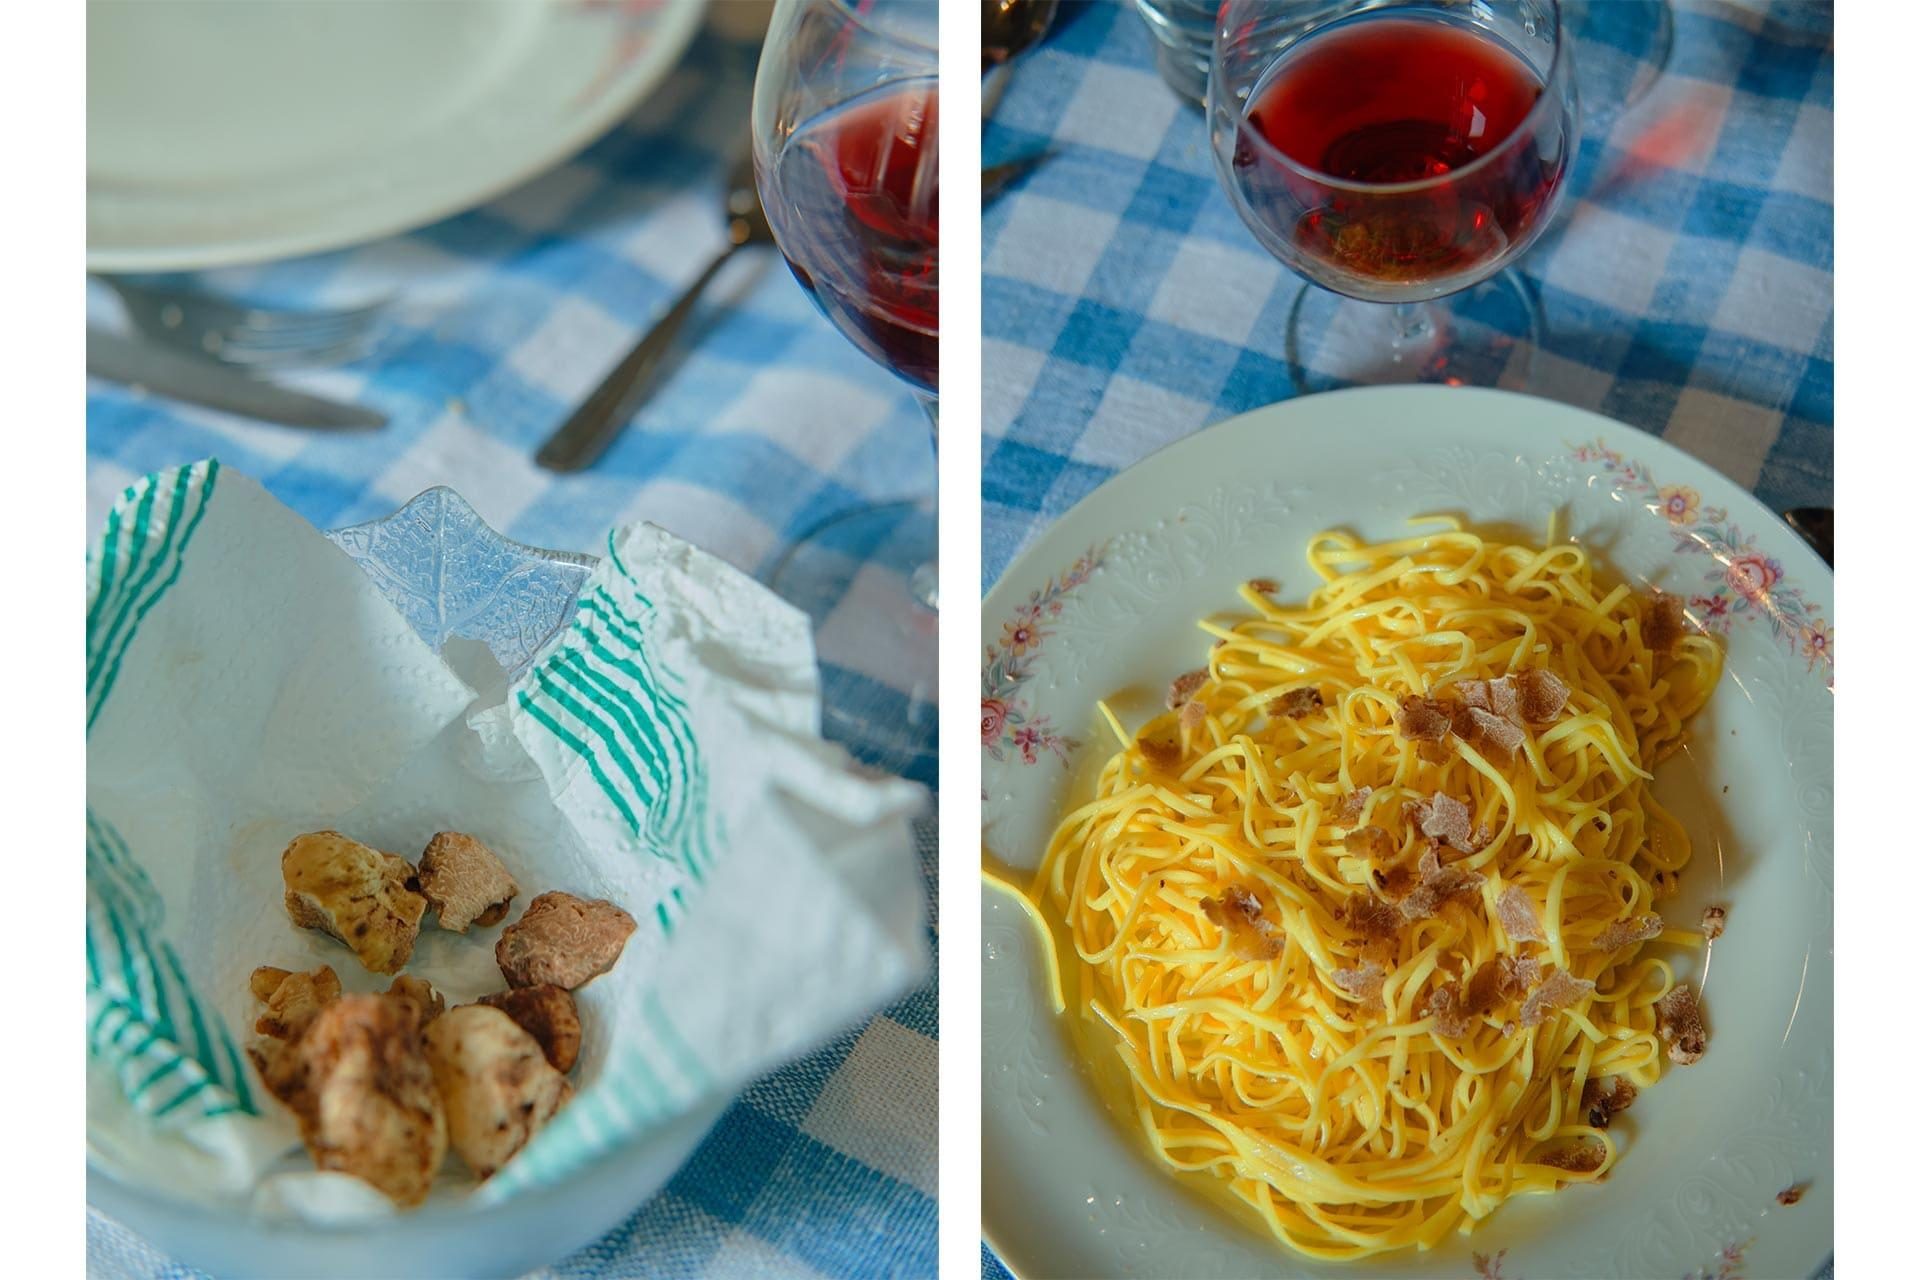 Close up on a cup containing few truffles and a dish of pasta with some truffle on top